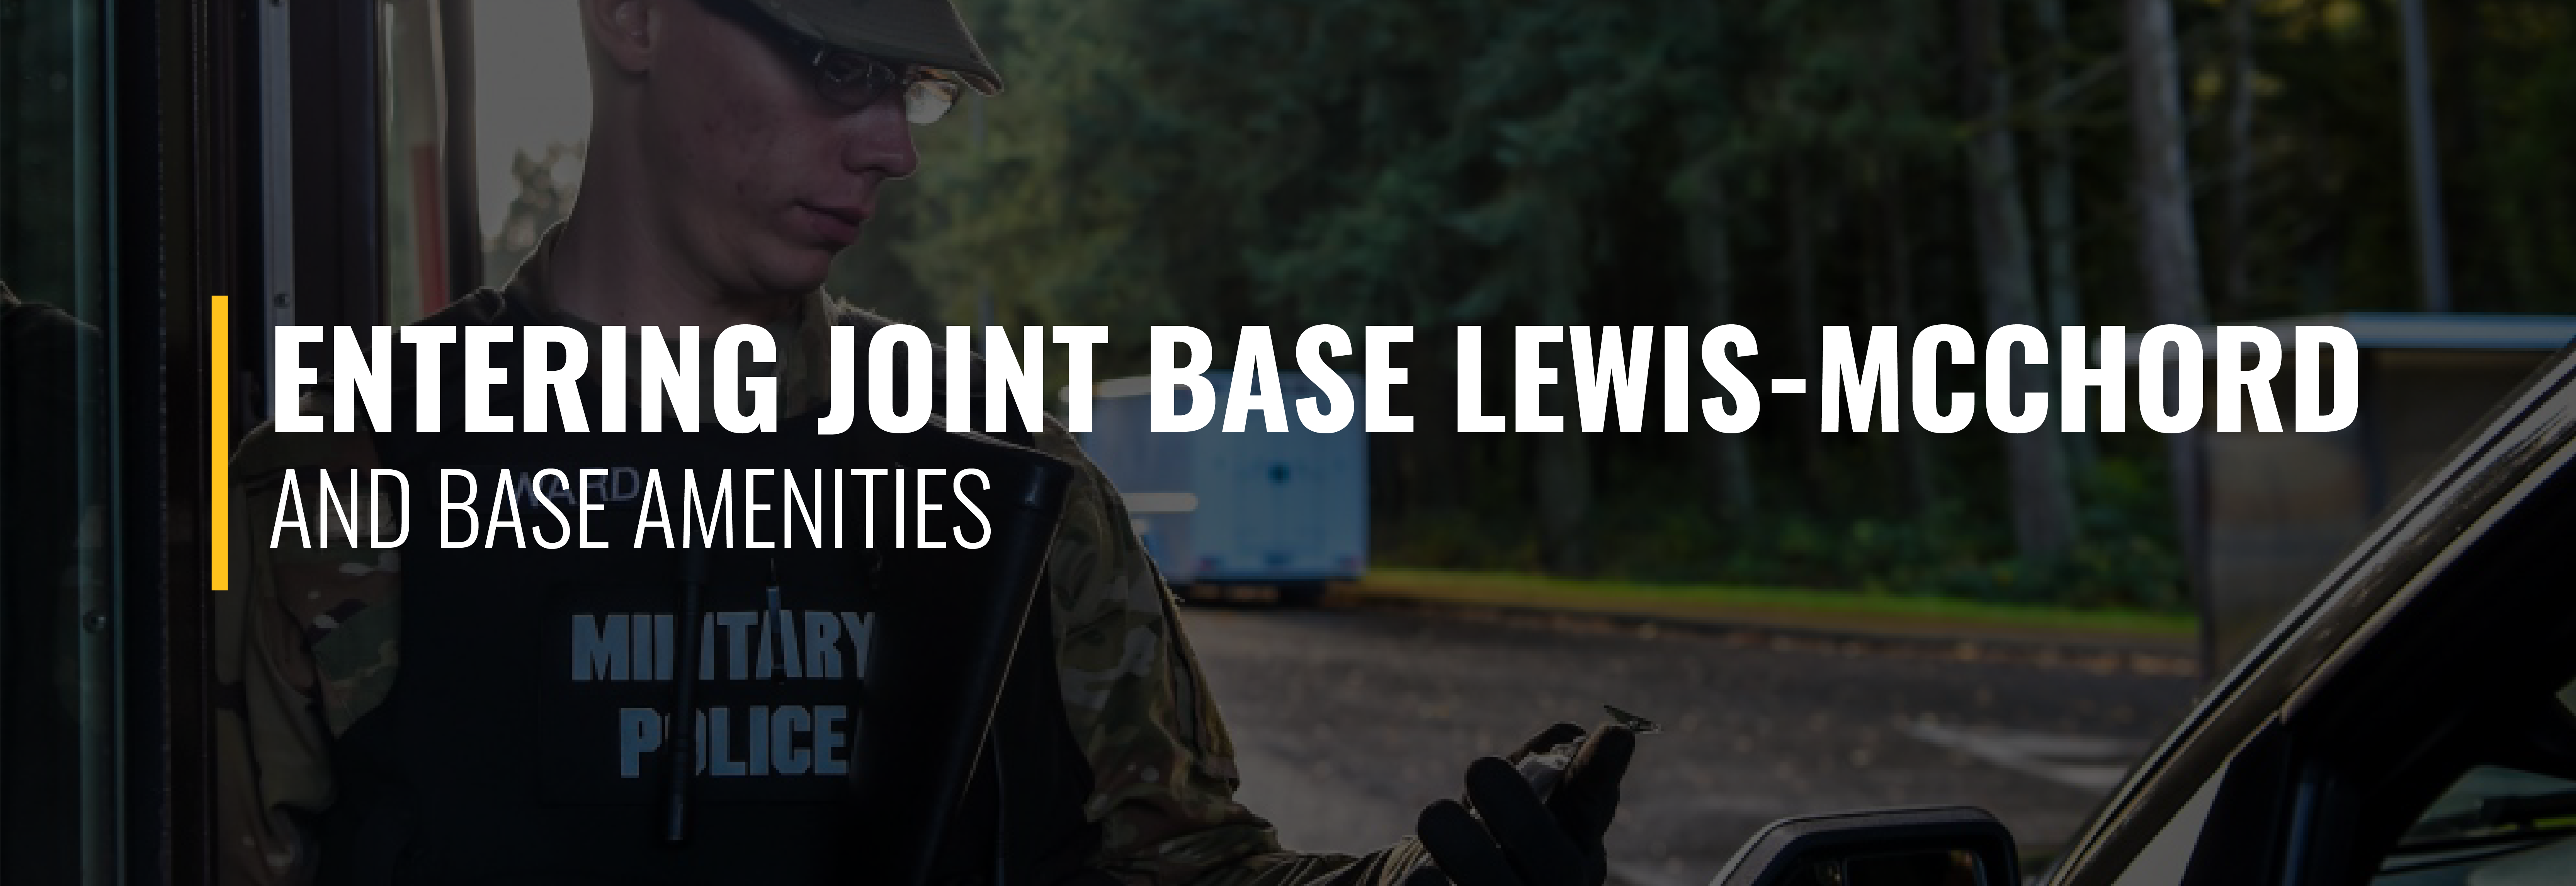 Entering Joint Base Lewis-McChord and Base Amenities